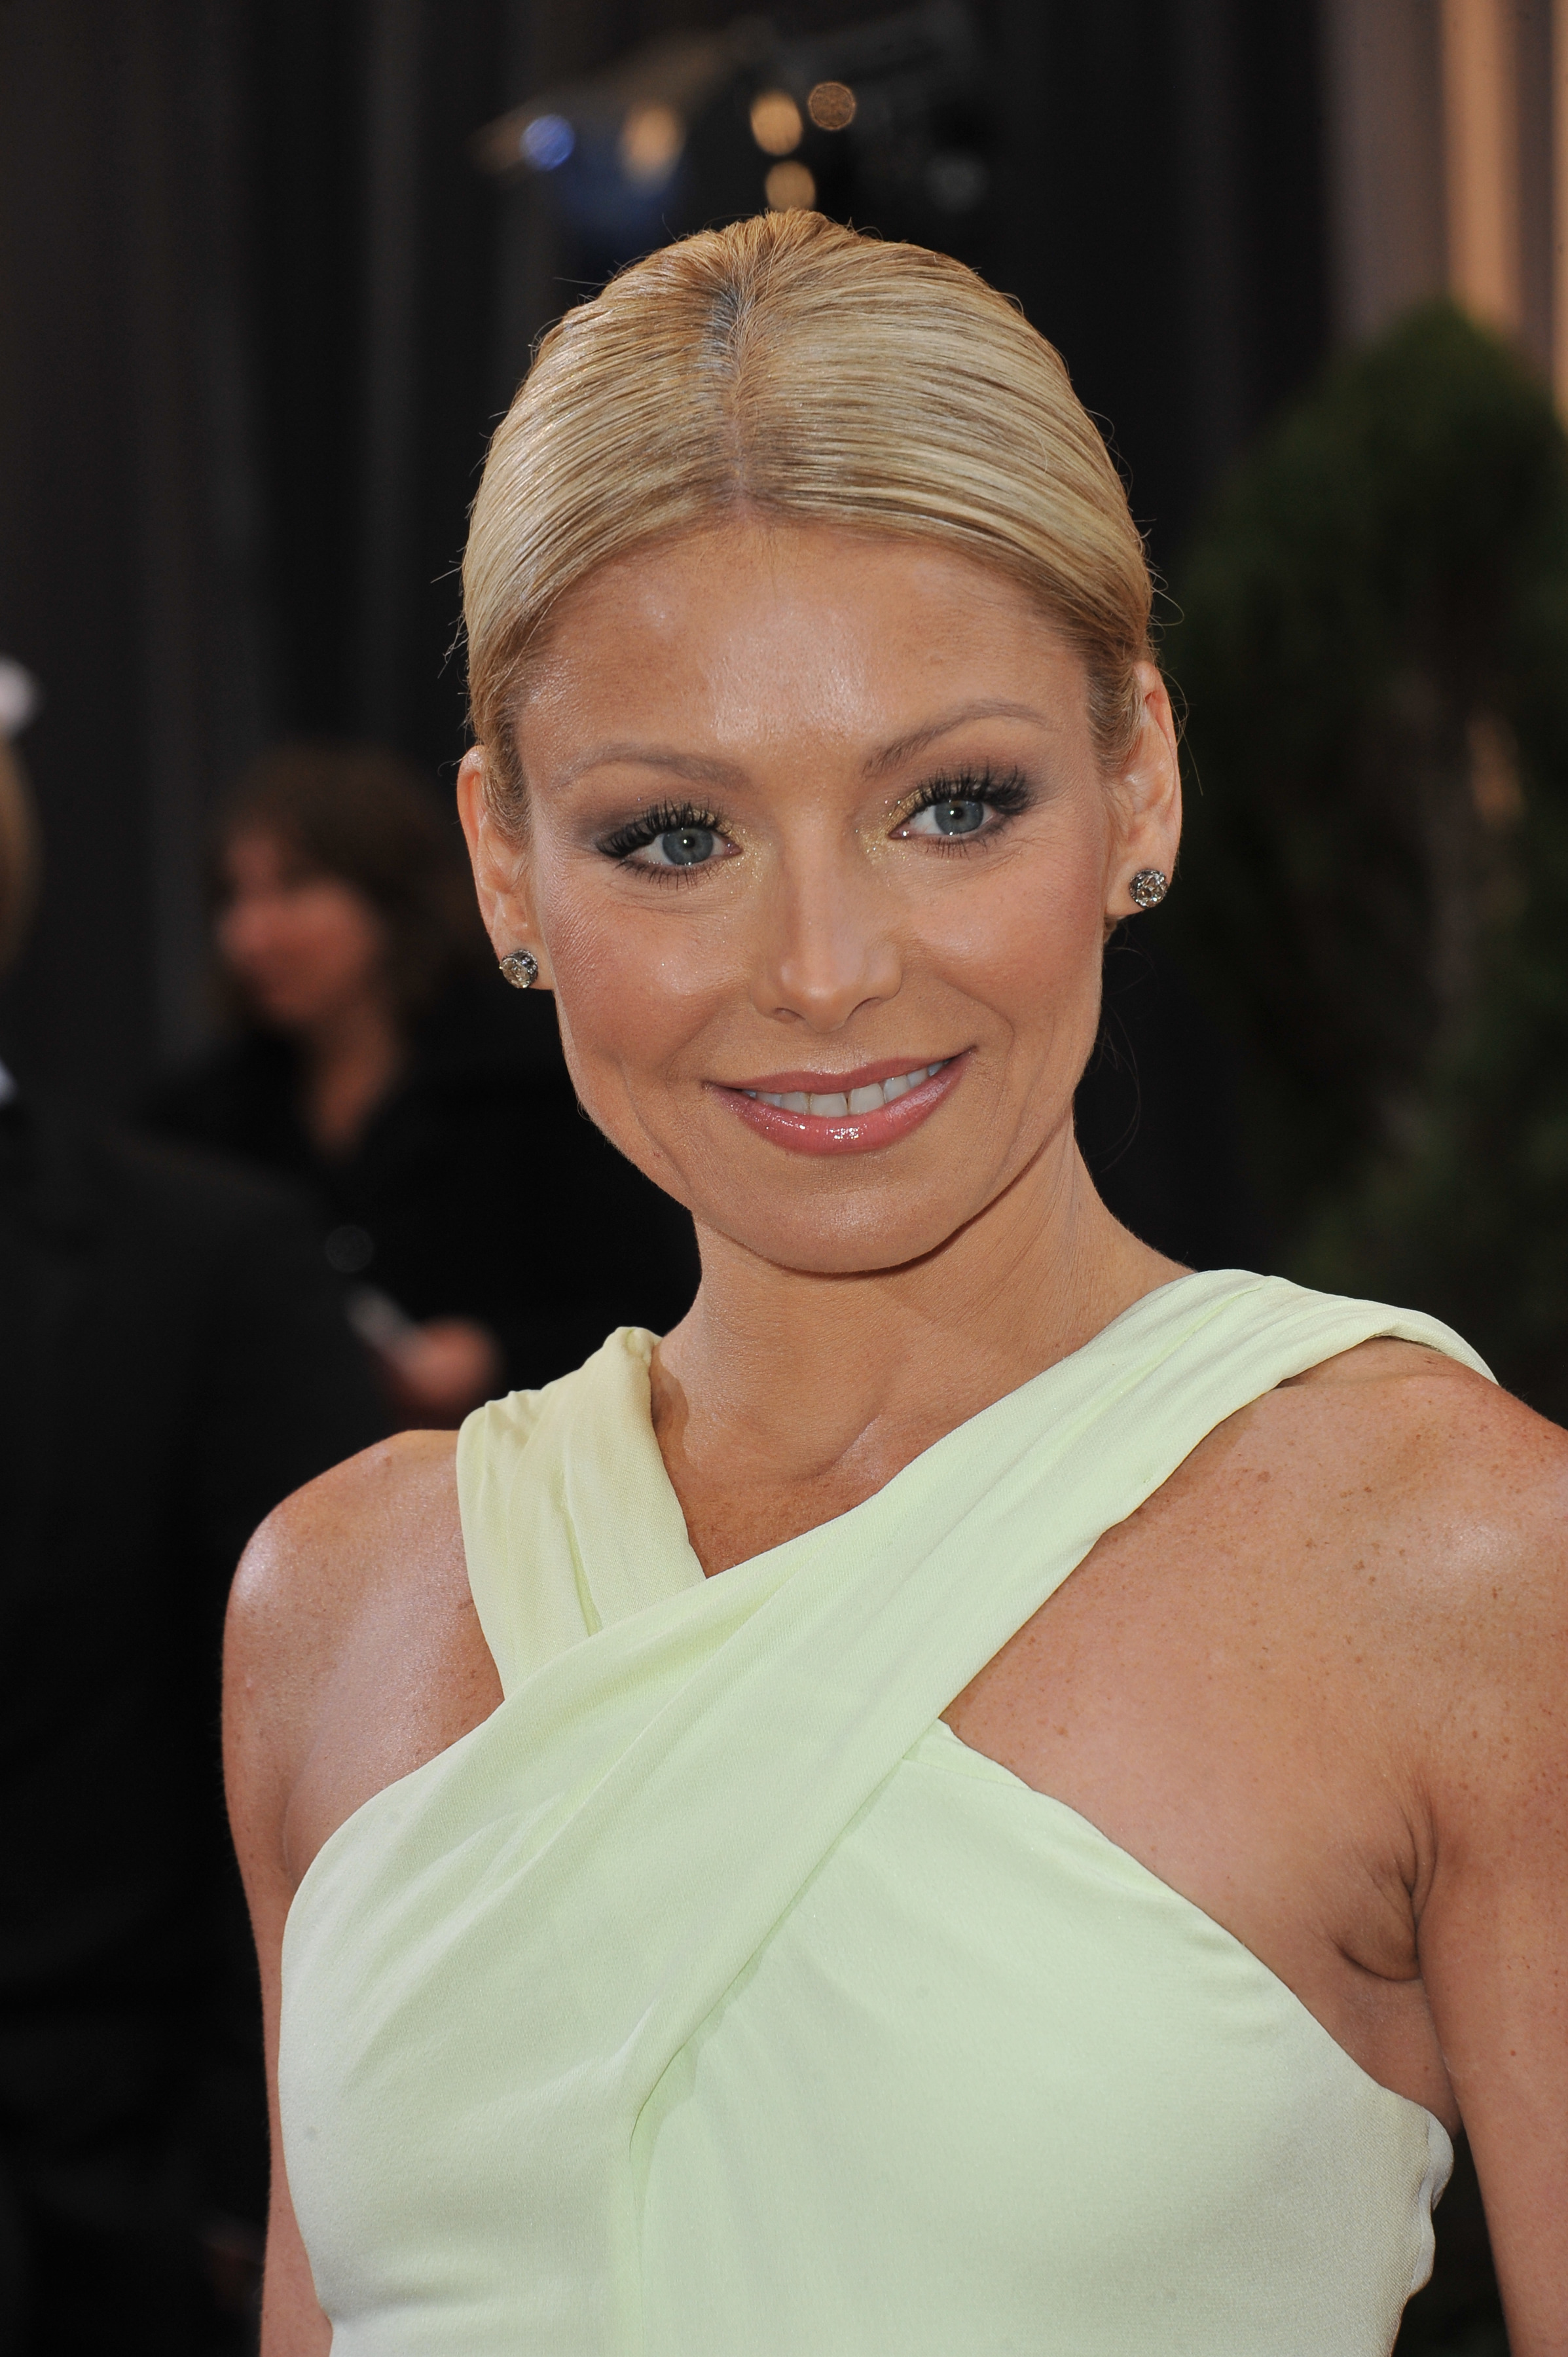 Want to Look Like Kelly Ripa?